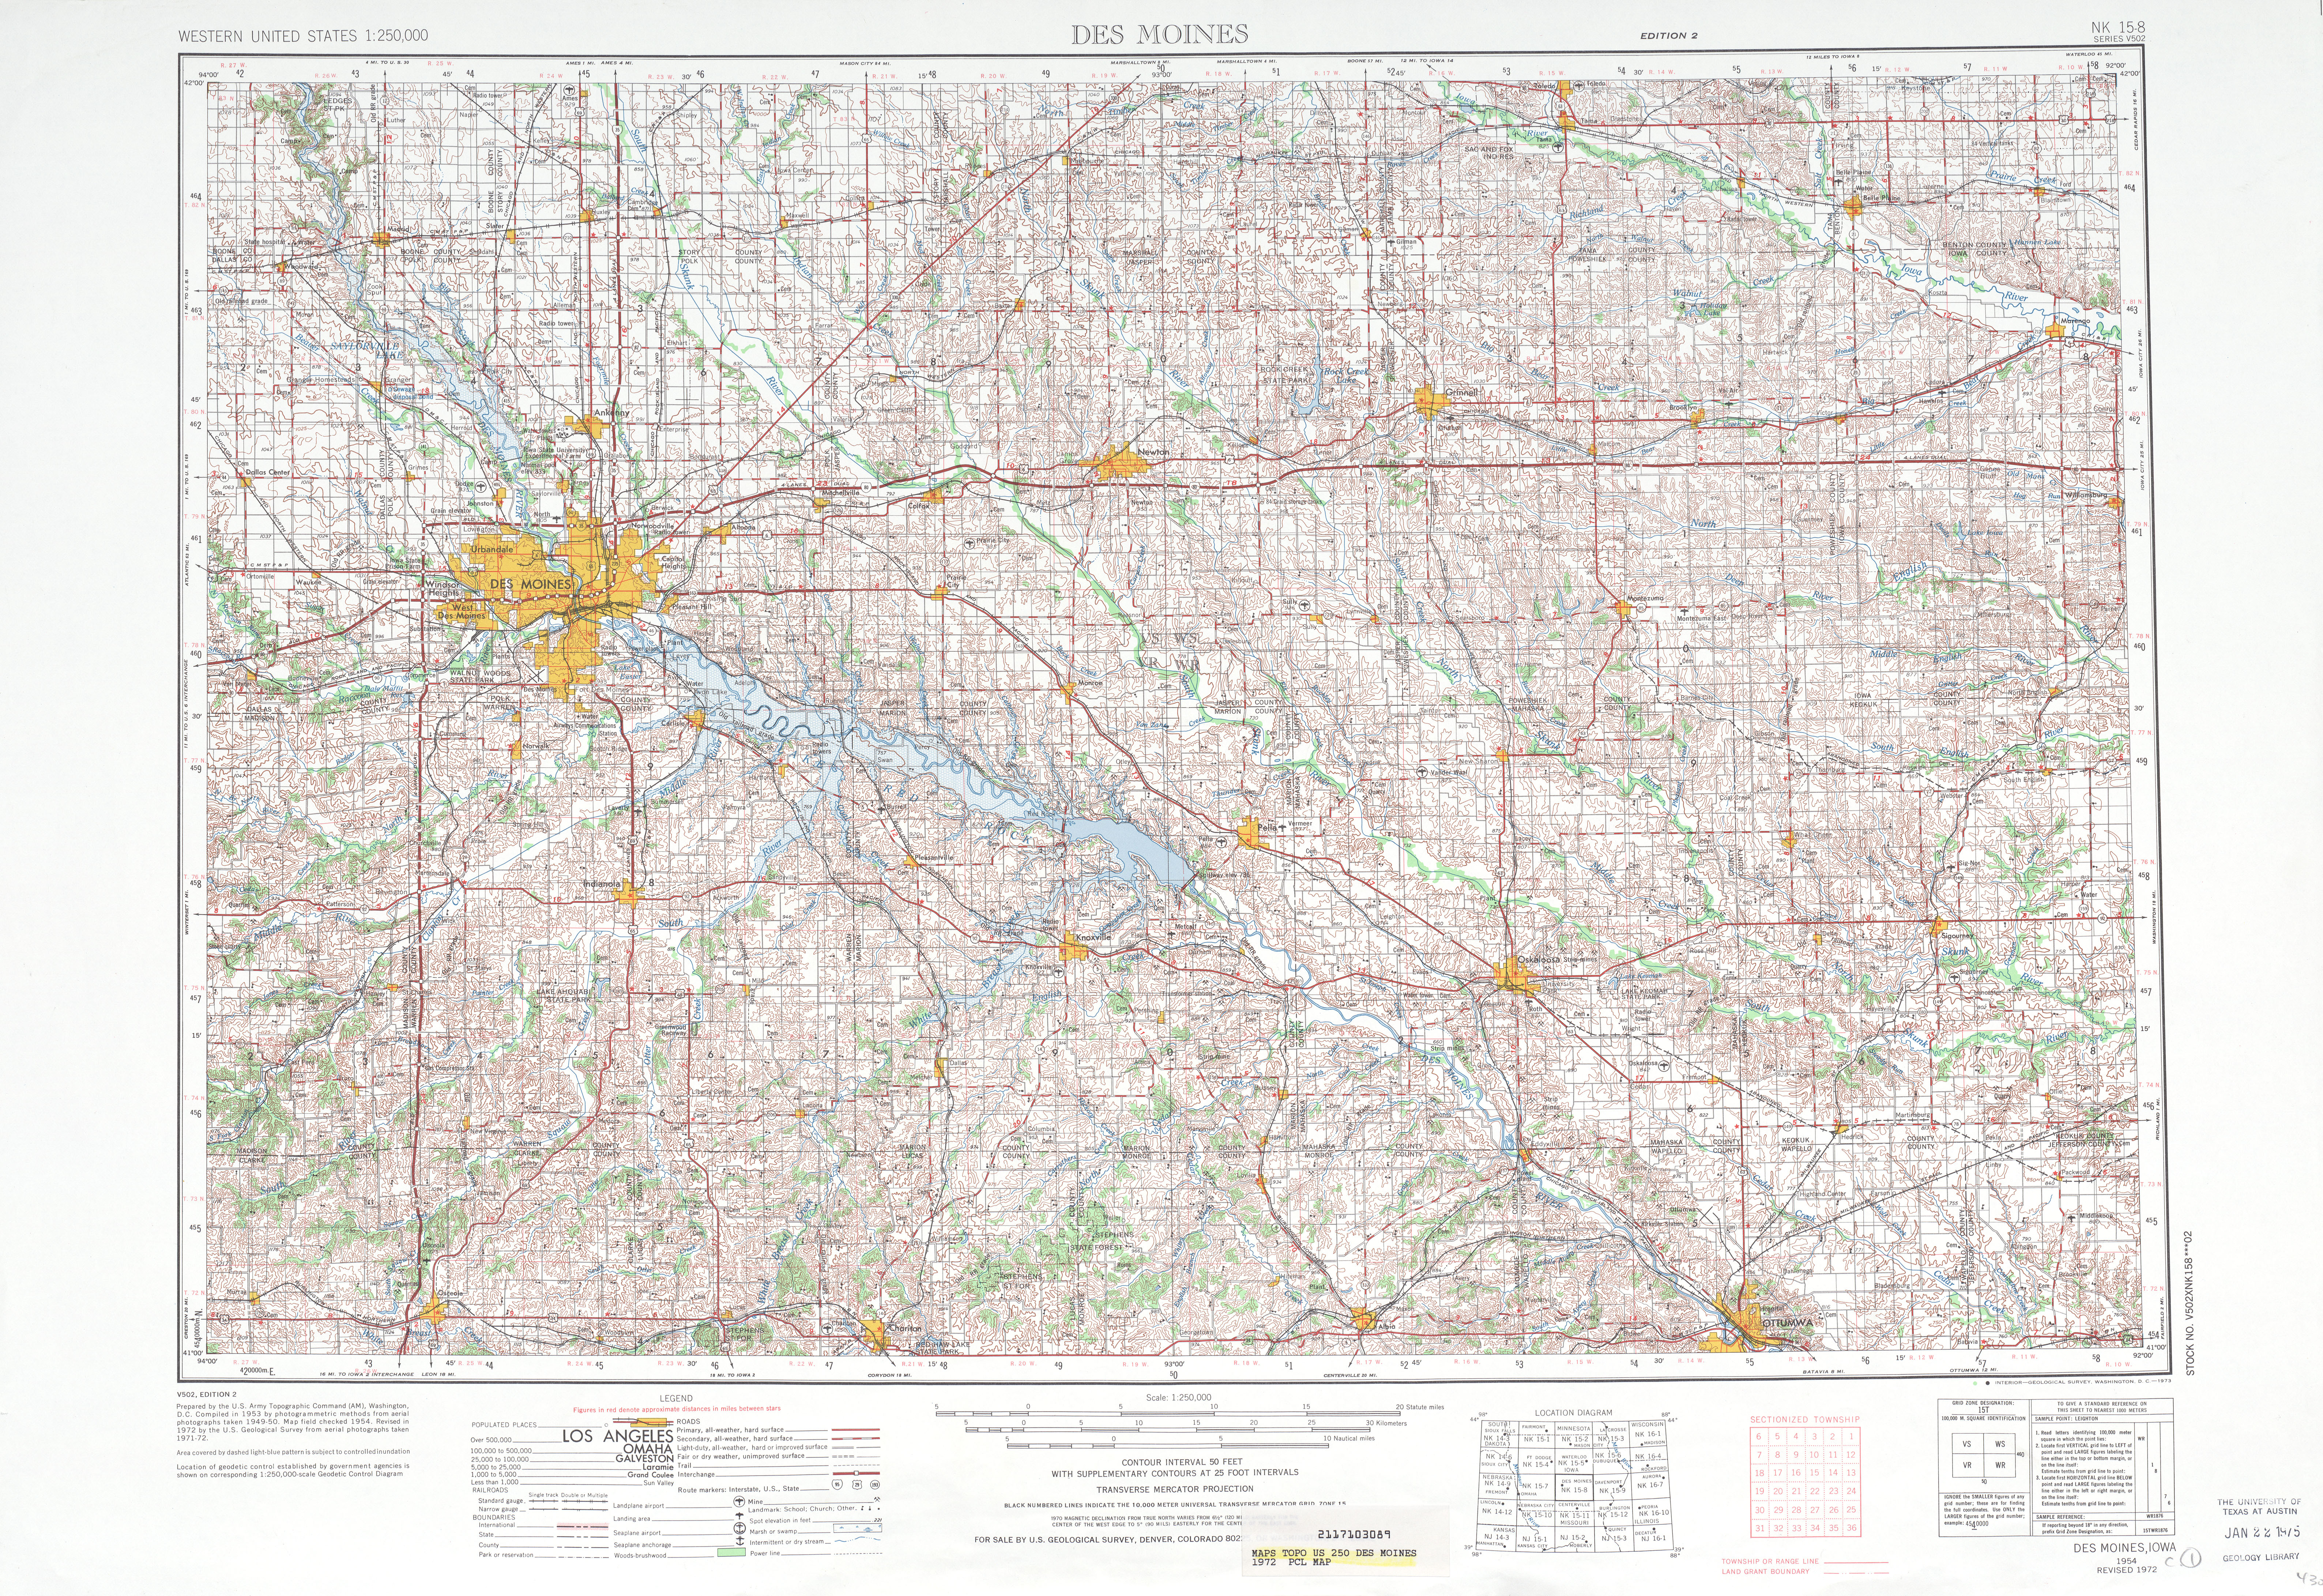 Des Moines Topographic Map Sheet, United States 1972